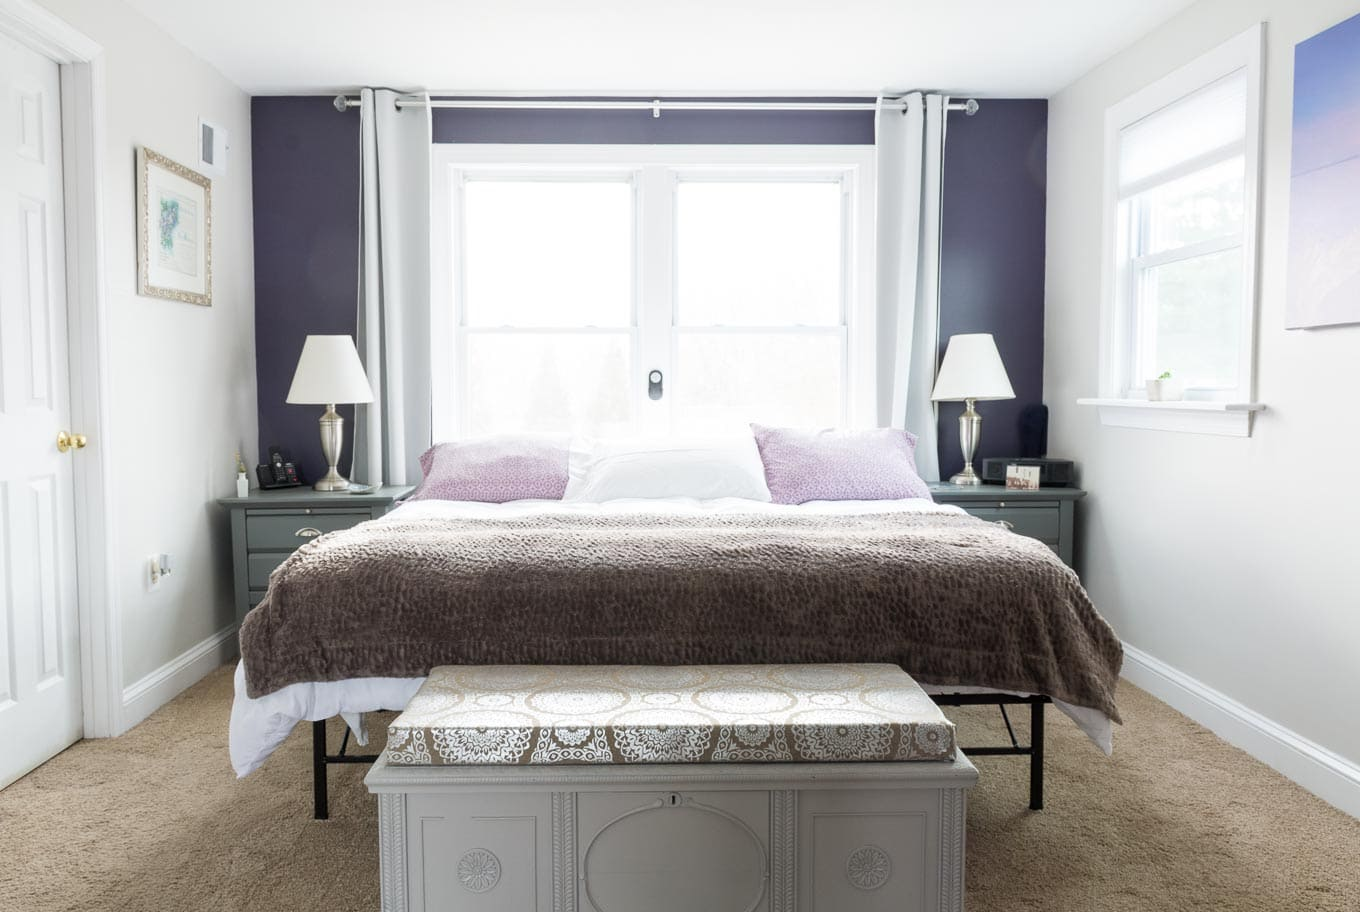 Fresh and easy updates to a dated master bedroom